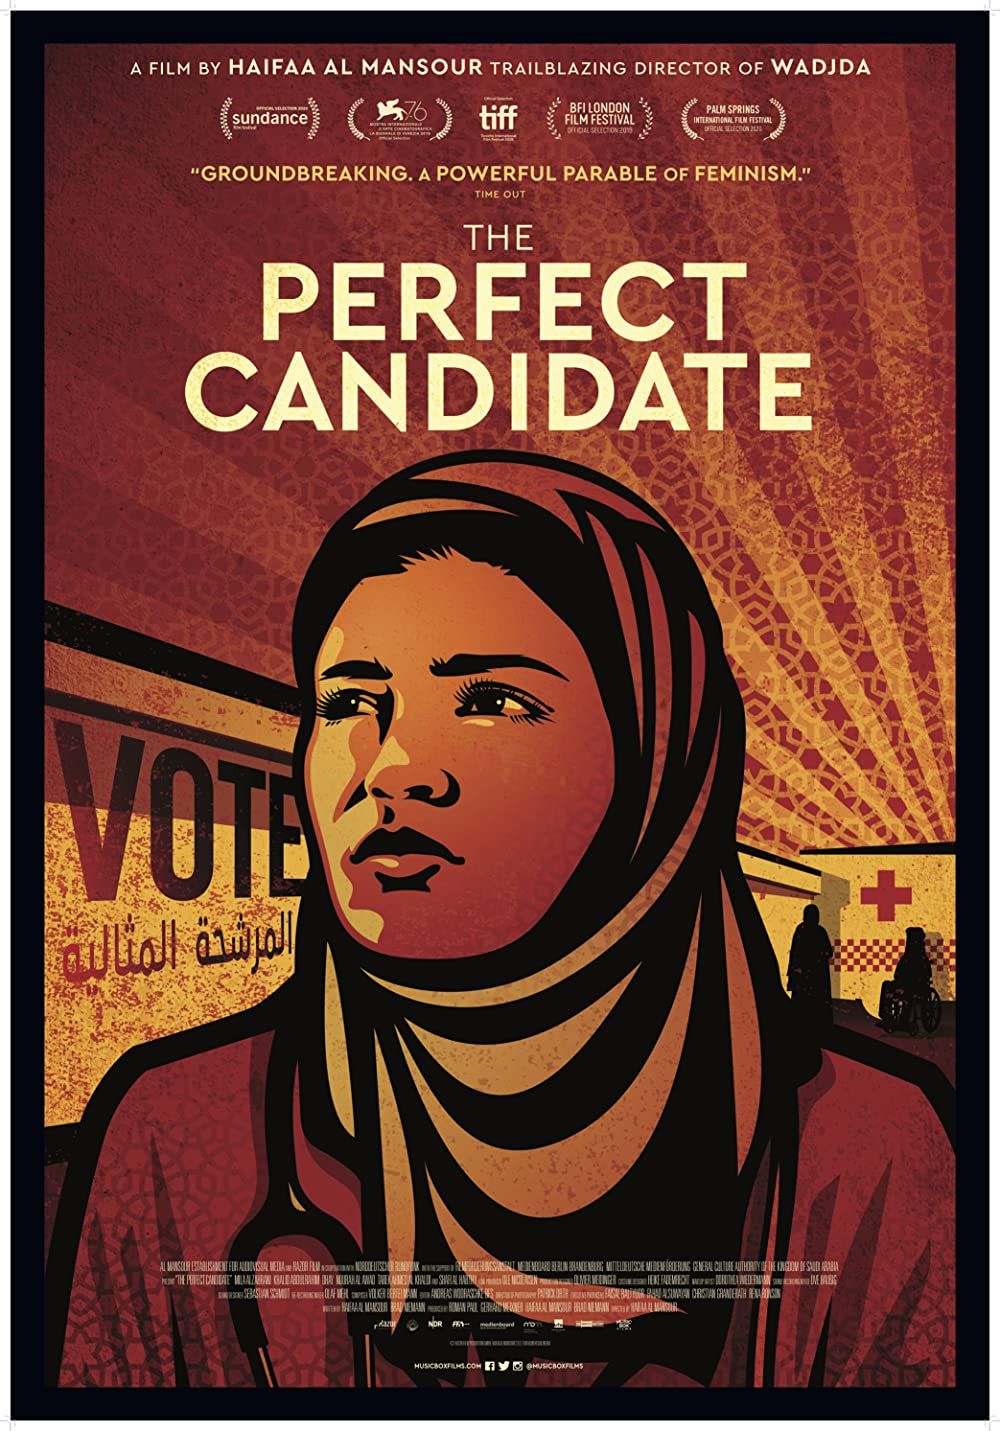 Full trailer for The Perfect Candidate by Haifaa Al-Mansour